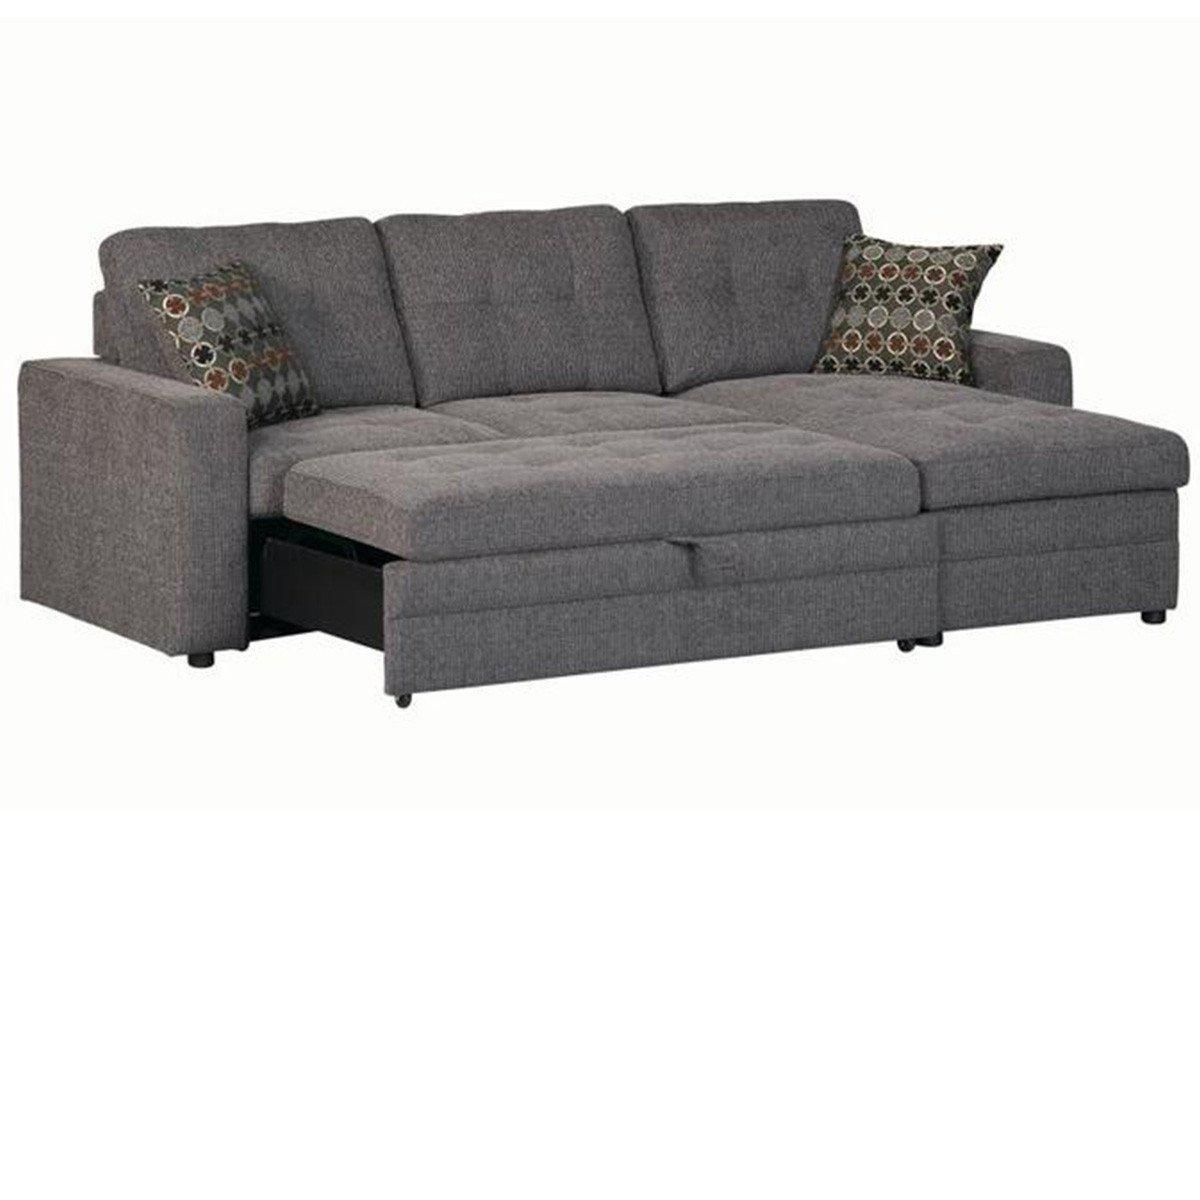 European Sleeper Sectional Sofa Giorgio With Storage Modern Design Grey Fold Out Couch Modern Sofa Sectional Types Of Couches